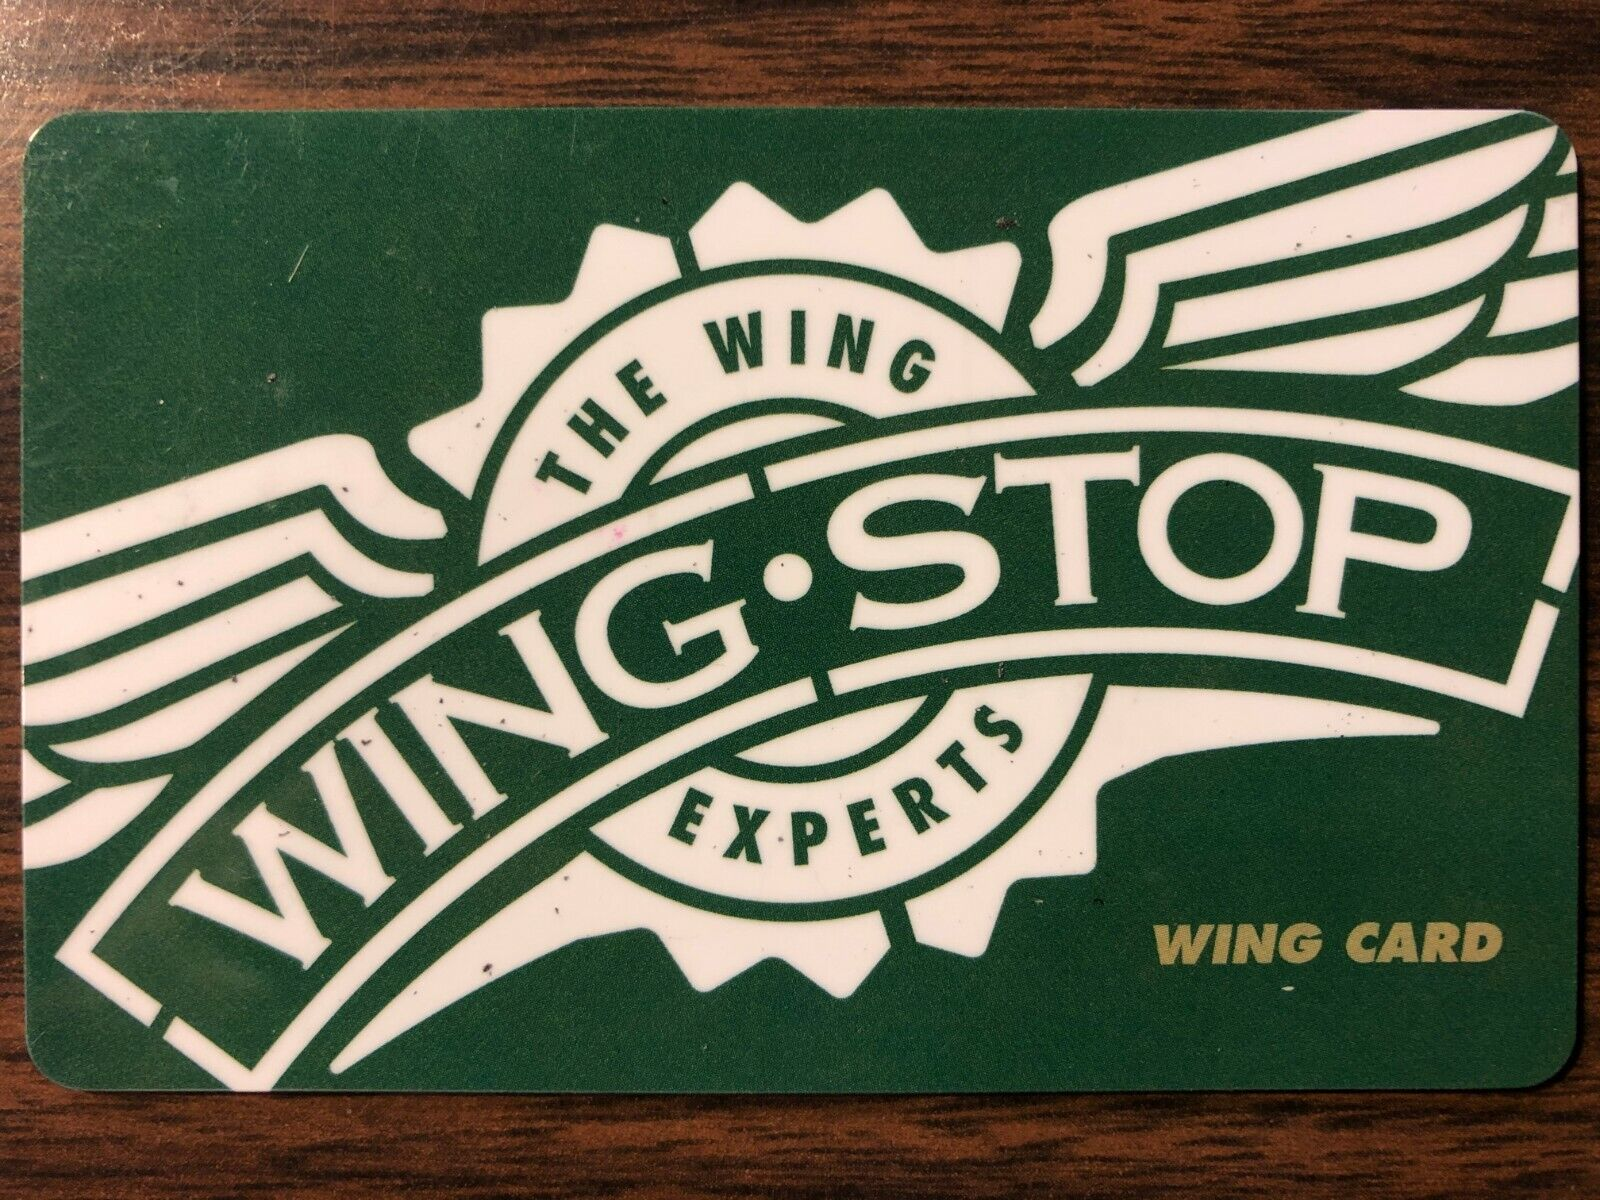 Wingstop Gift Card 100.00 Value. Free Shipping  - $76.00